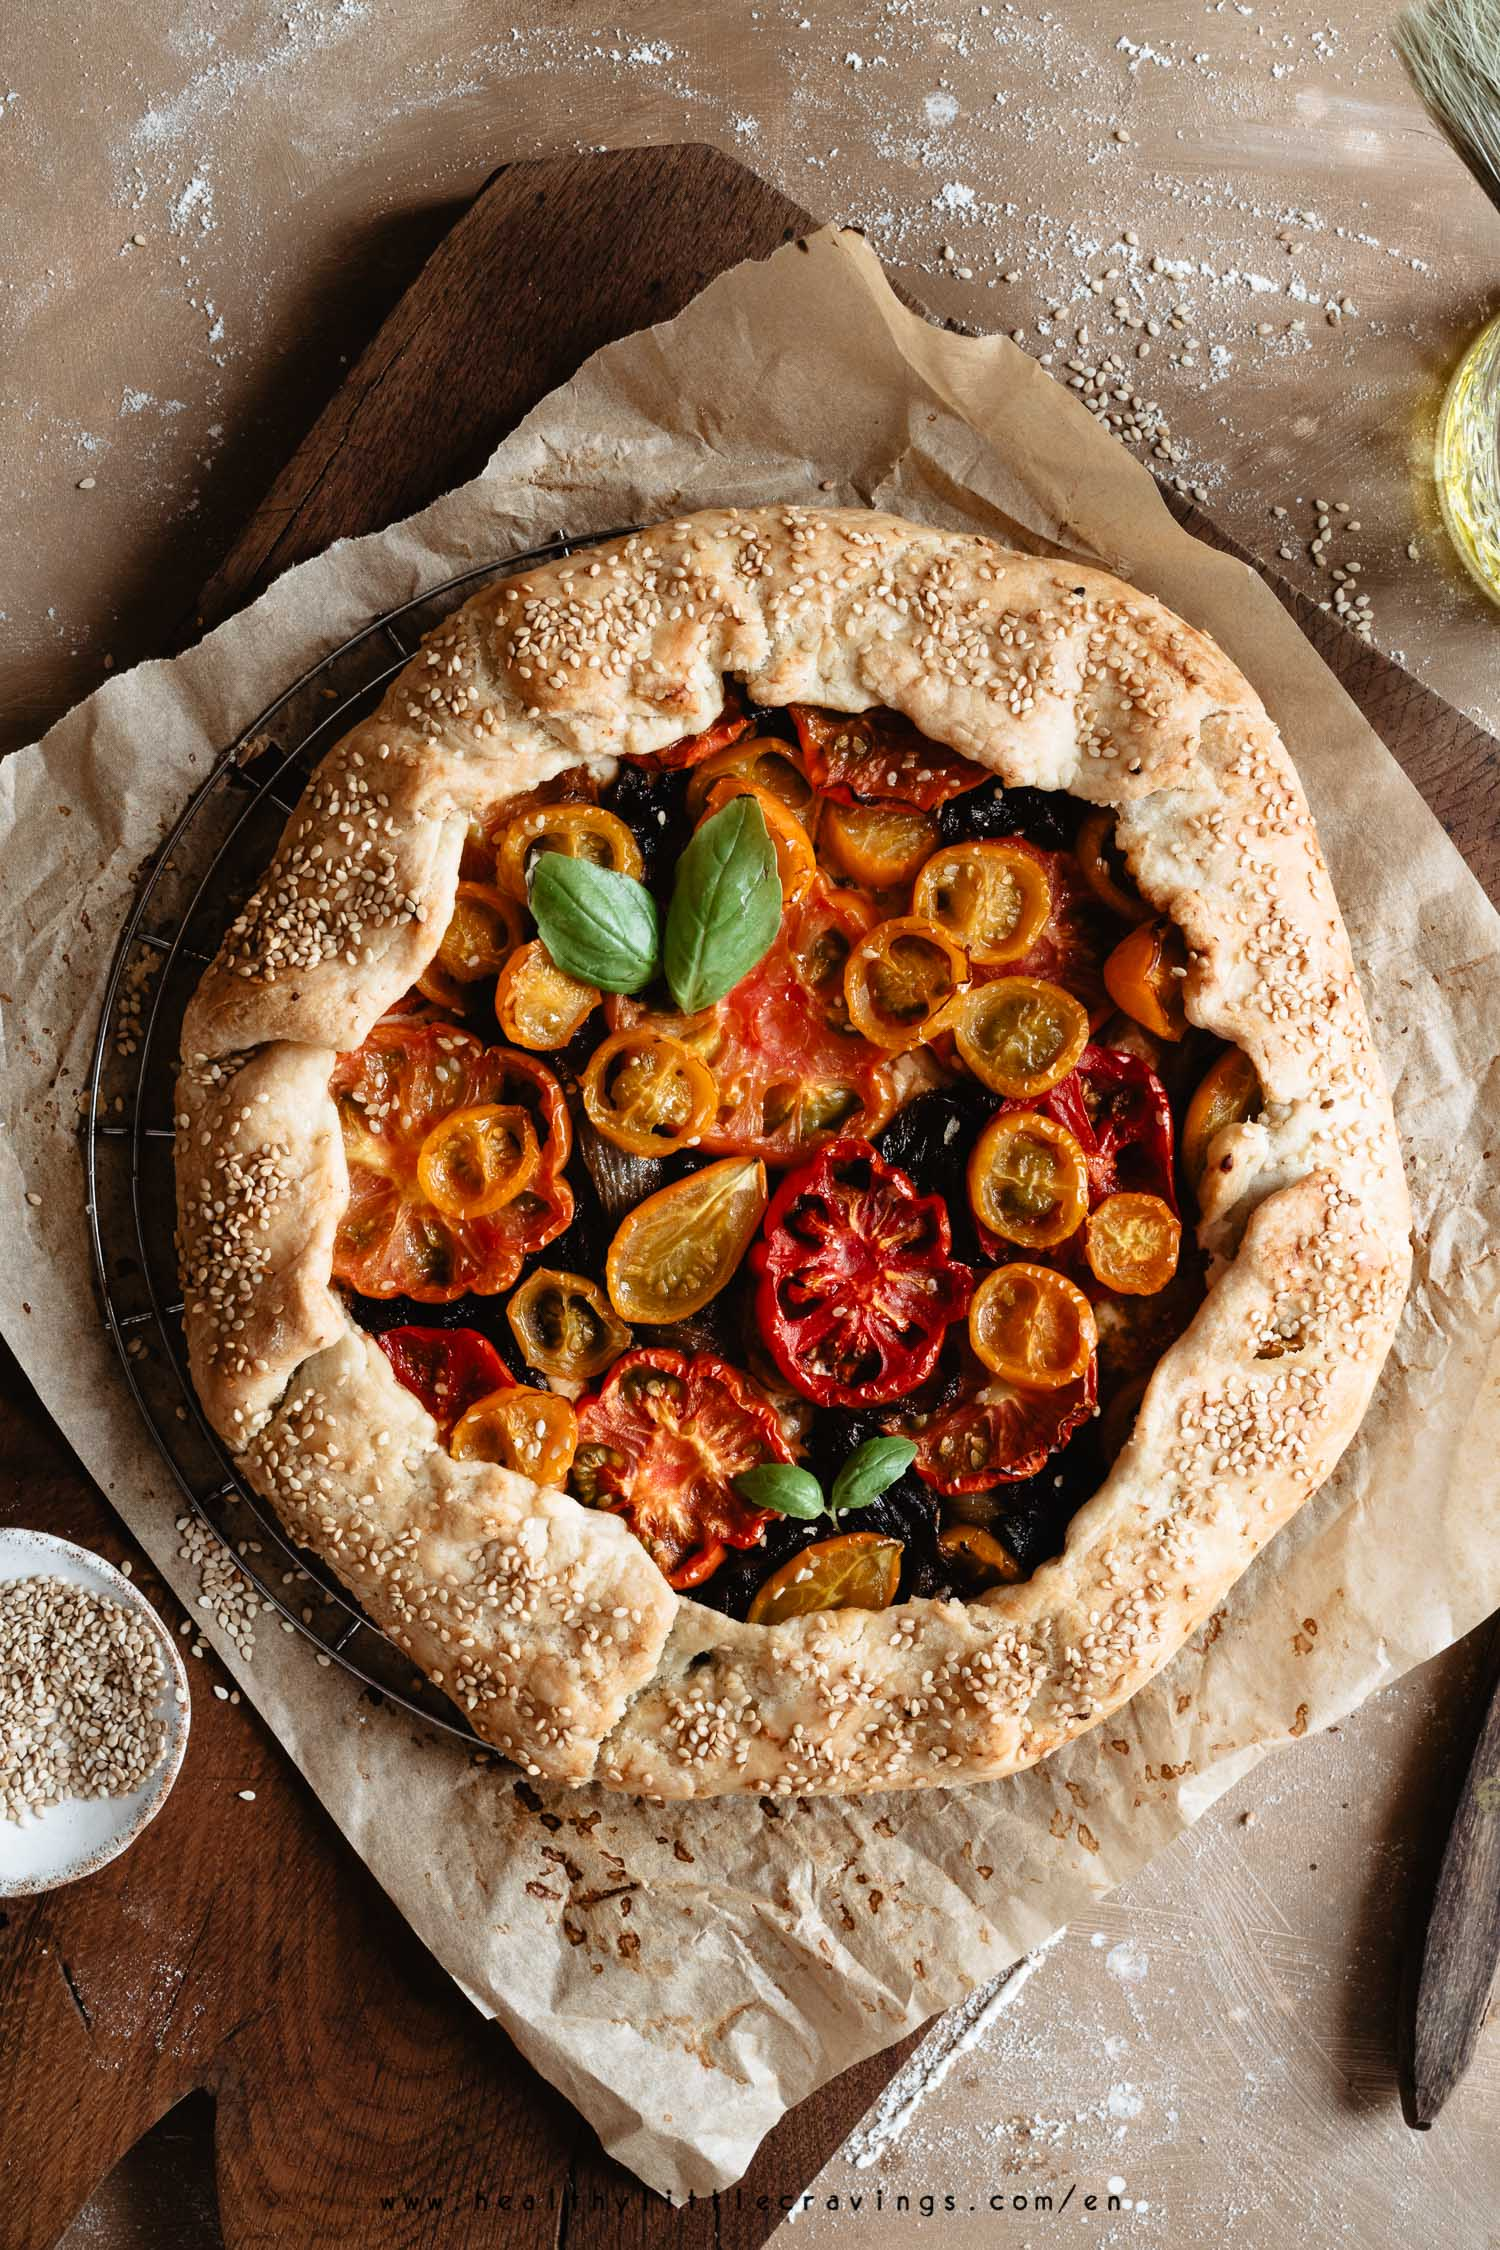 Tomato galette with caramelized onion and goat cheese